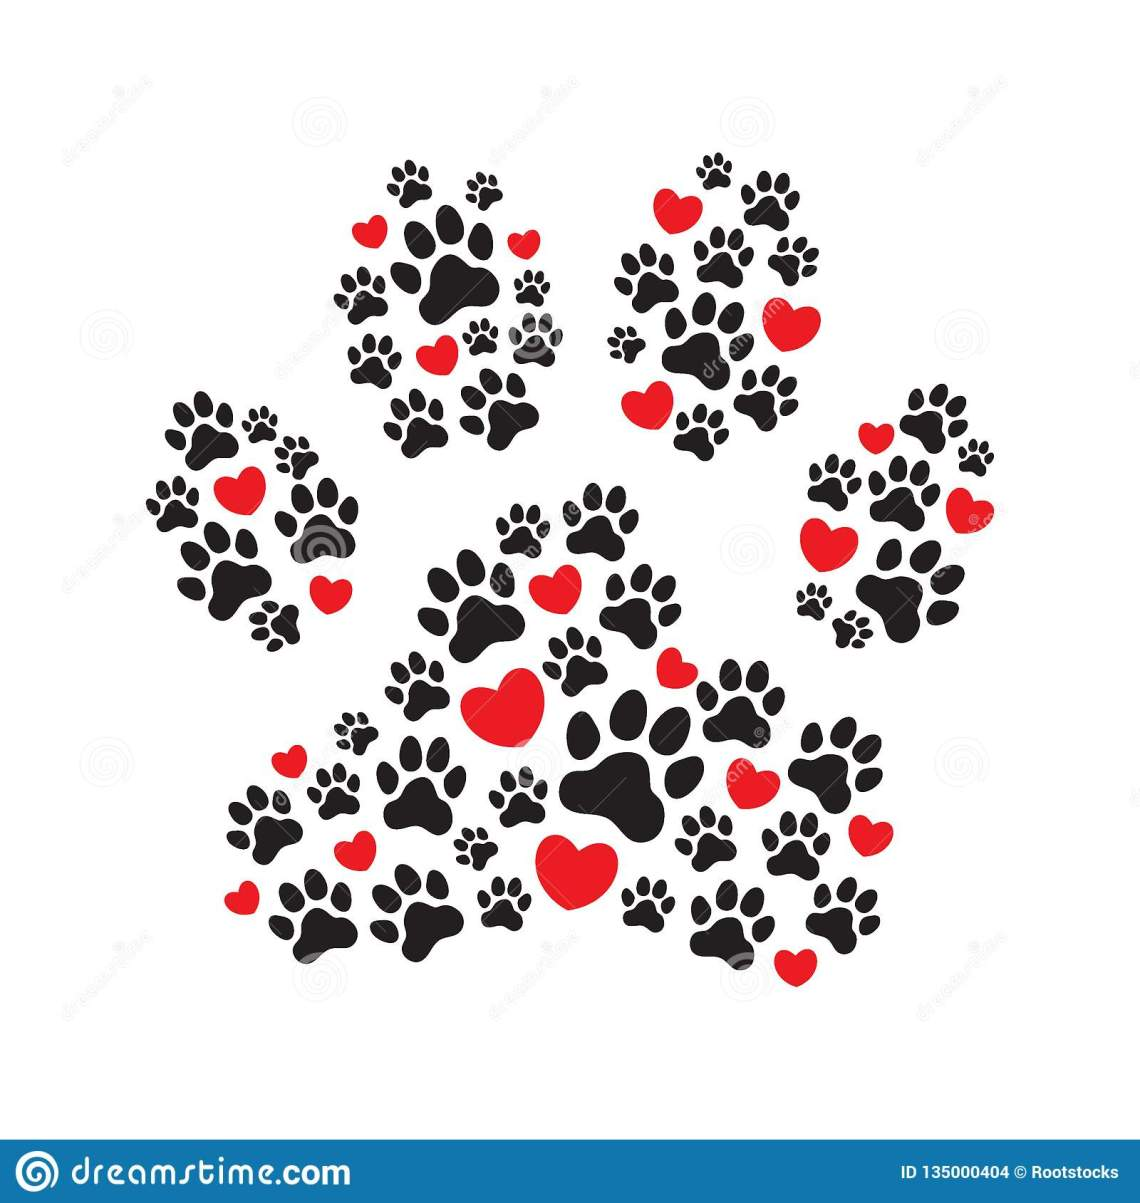 Download Paw Print Filled With Paw Prints And Hearts Stock ...